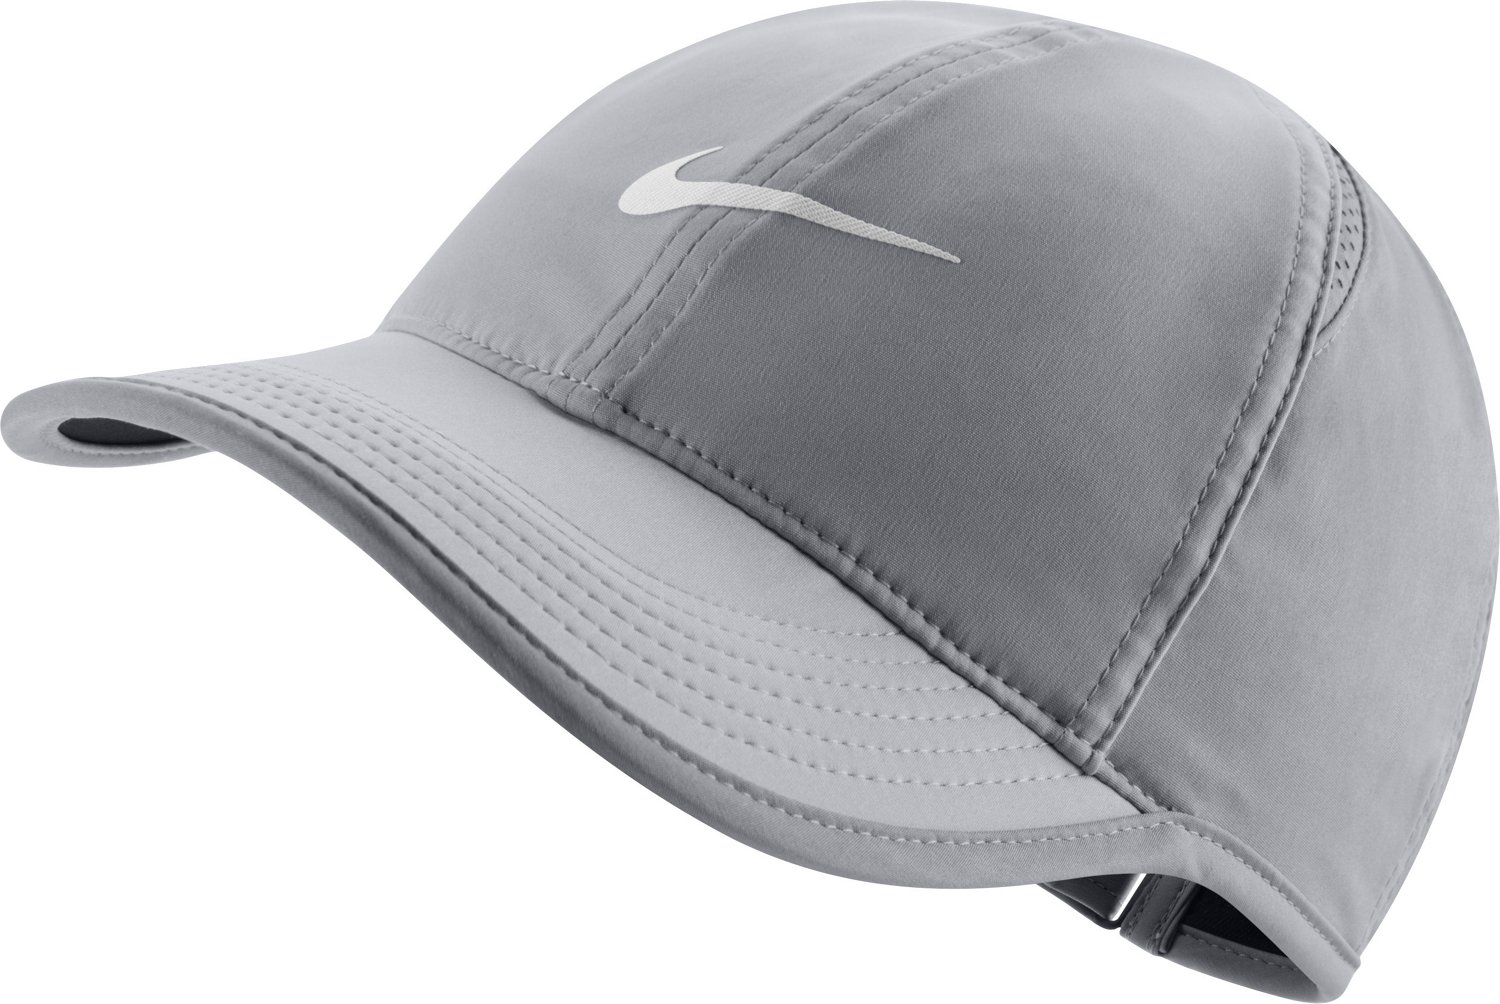 0eaf5e9b4b5 Display product reviews for Nike Women s Featherlight 2.0 Cap